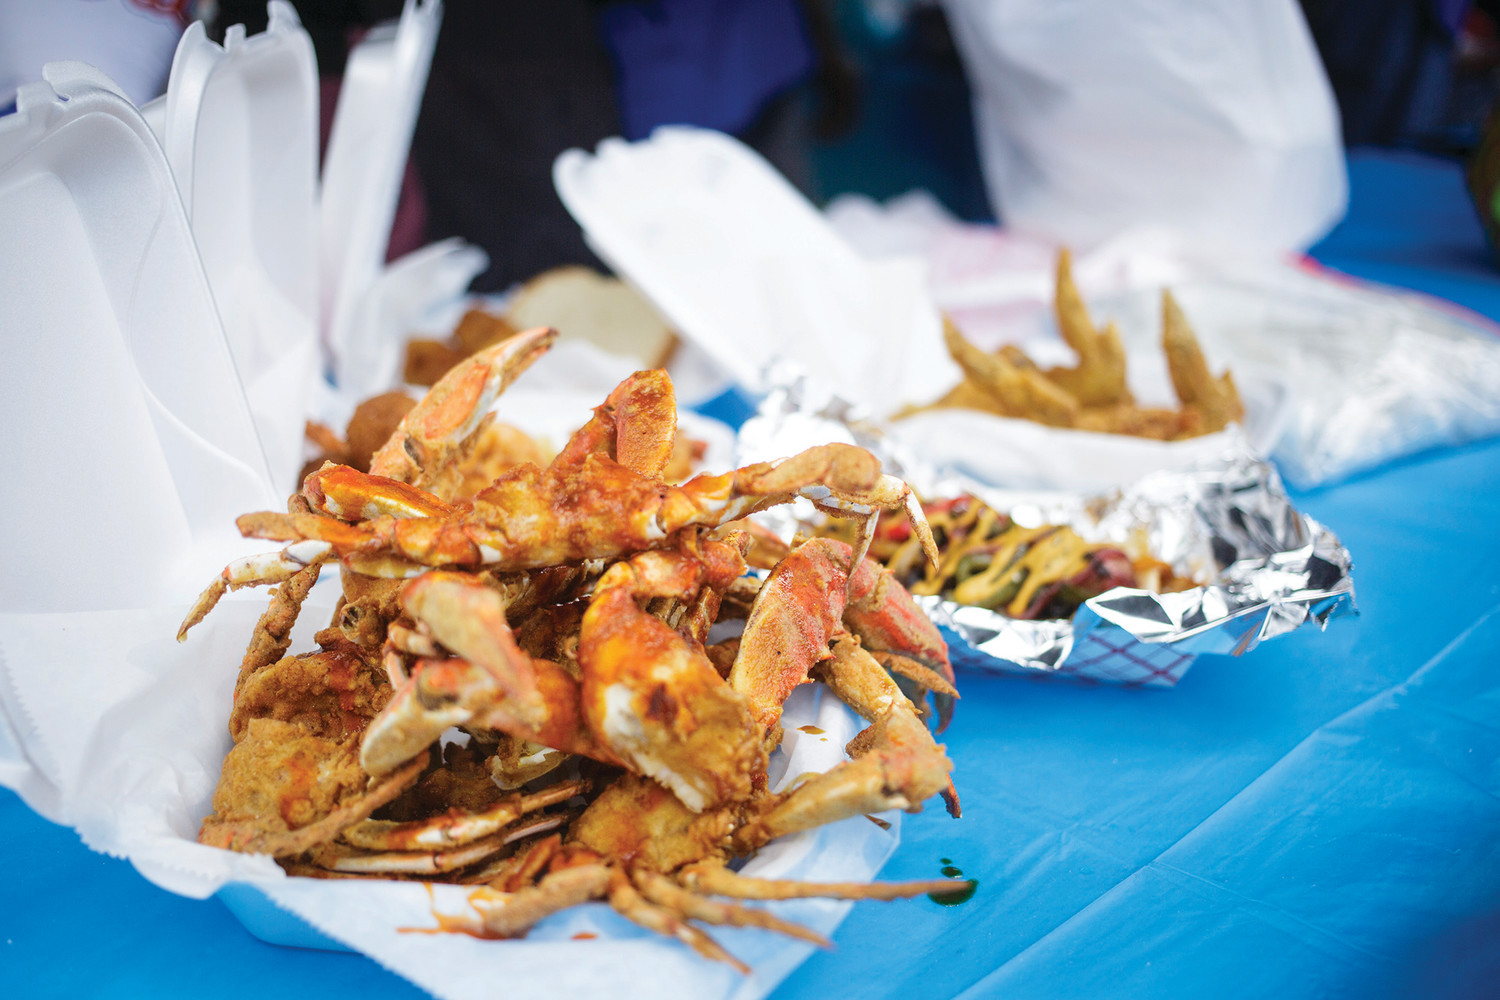 A variety of foods sit on a table Saturday at the Soul Food Festival in Green Cove Springs. The annual event  brings out the best of the best of the soul food industry from Jacksonville and Clay County with offerings ranging form garlic crab, to gumbo, to every type of barbecued meat a person would expect.